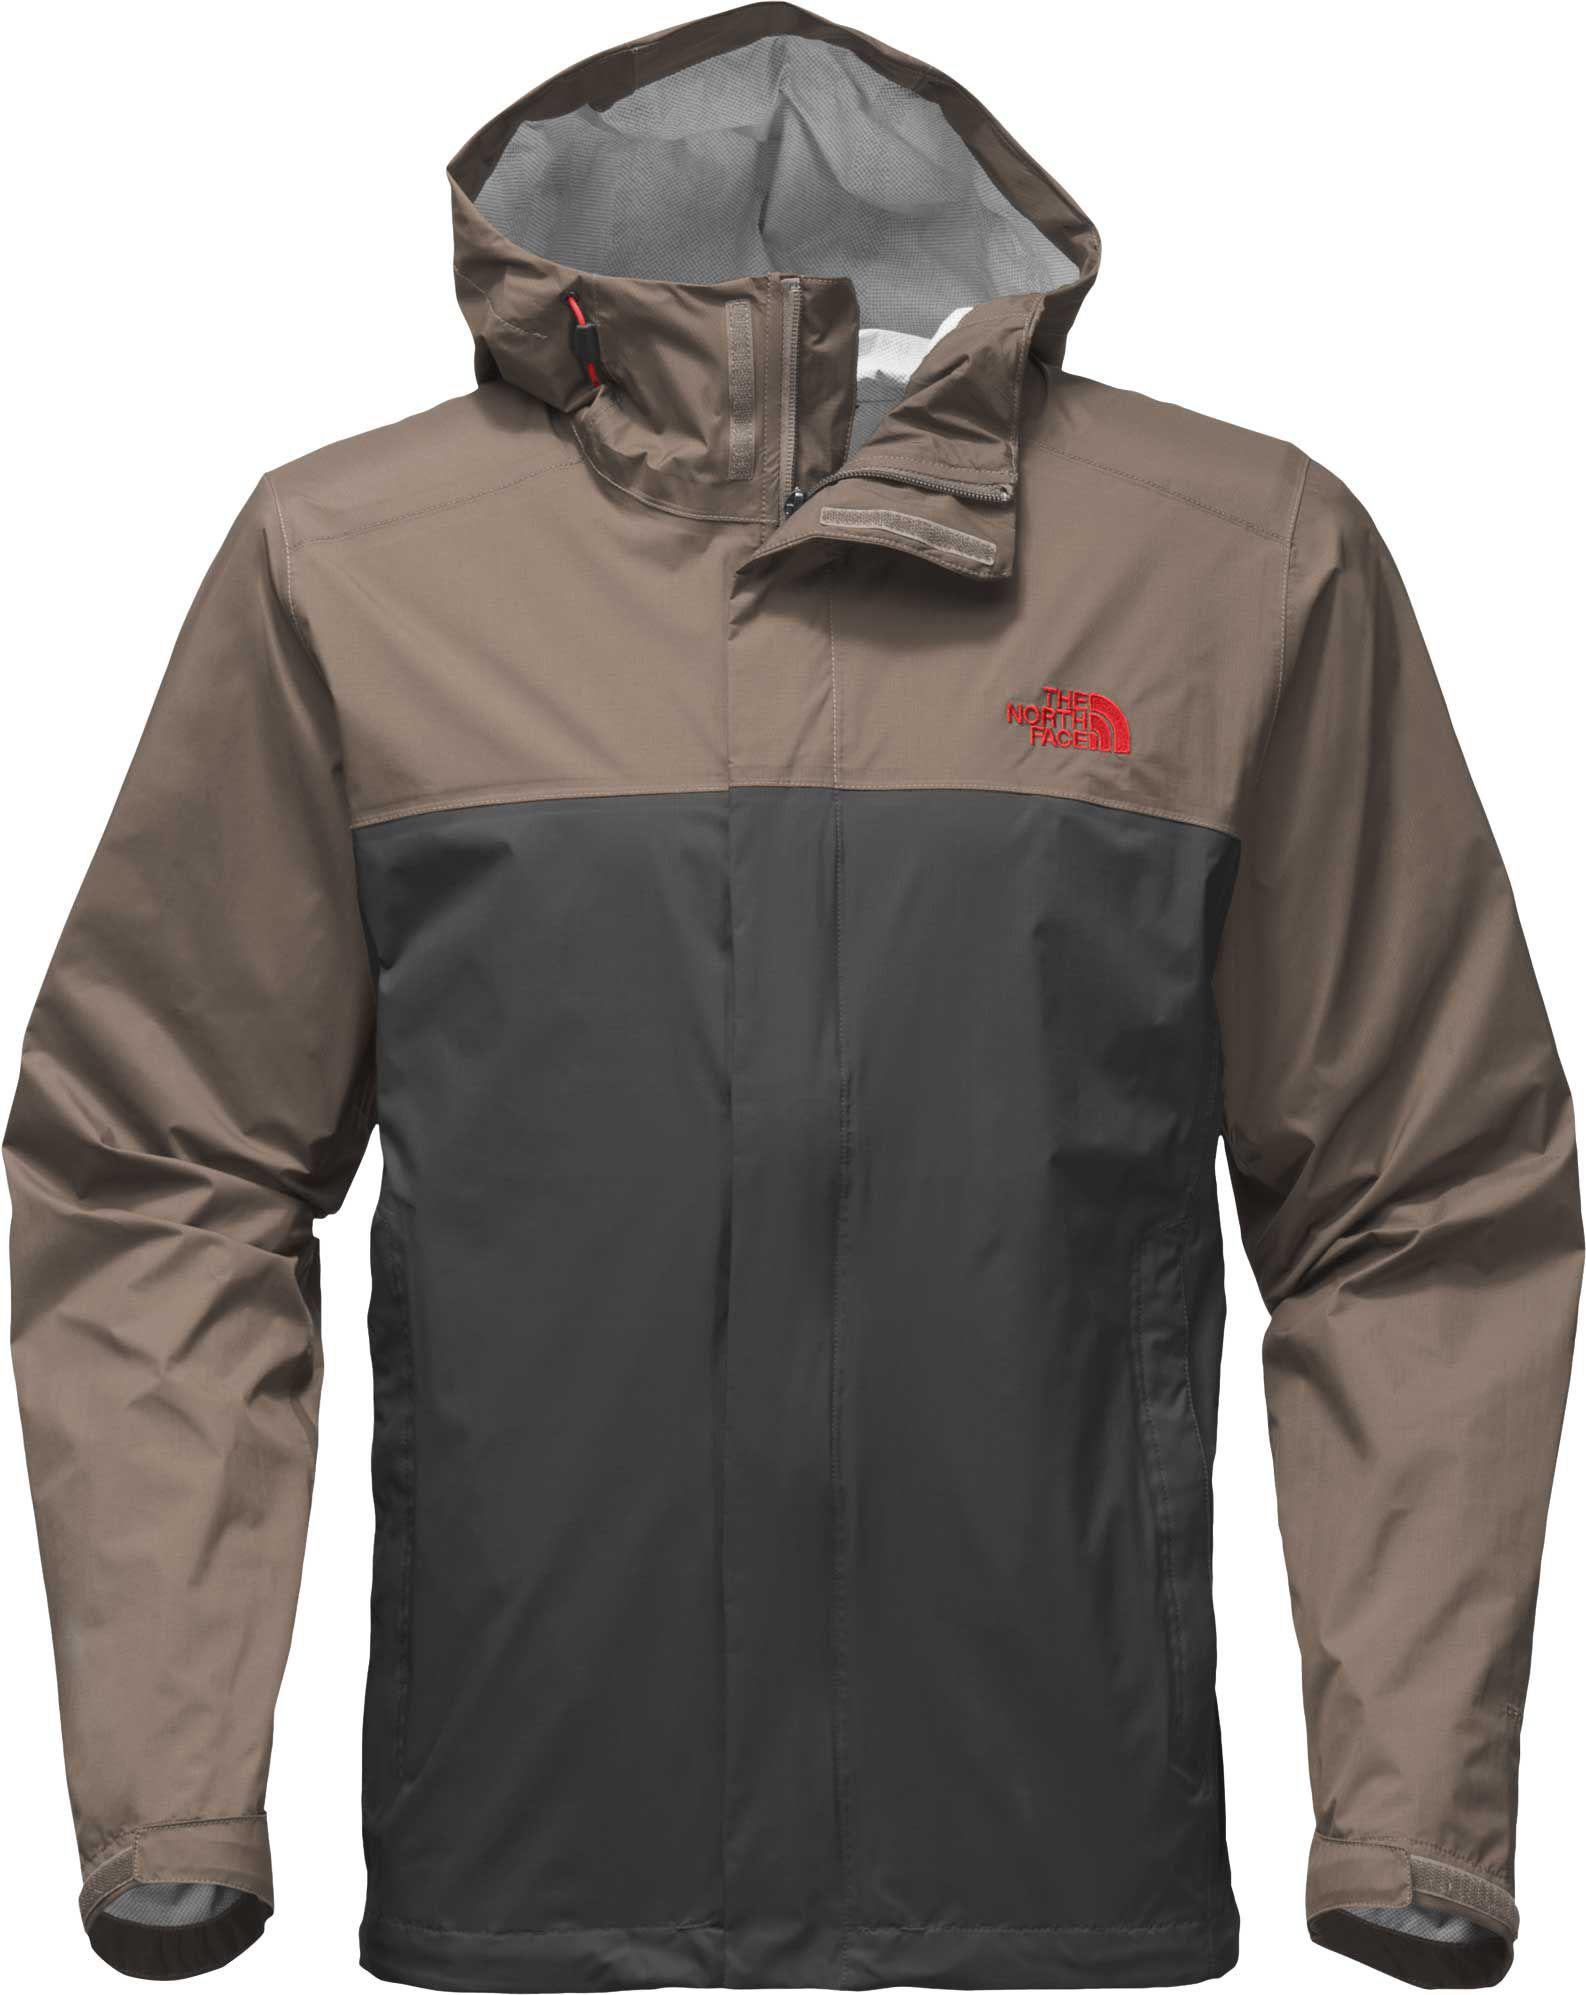 4986324973 Lyst - The North Face Venture 2 Jacket - Past Season in Gray for Men